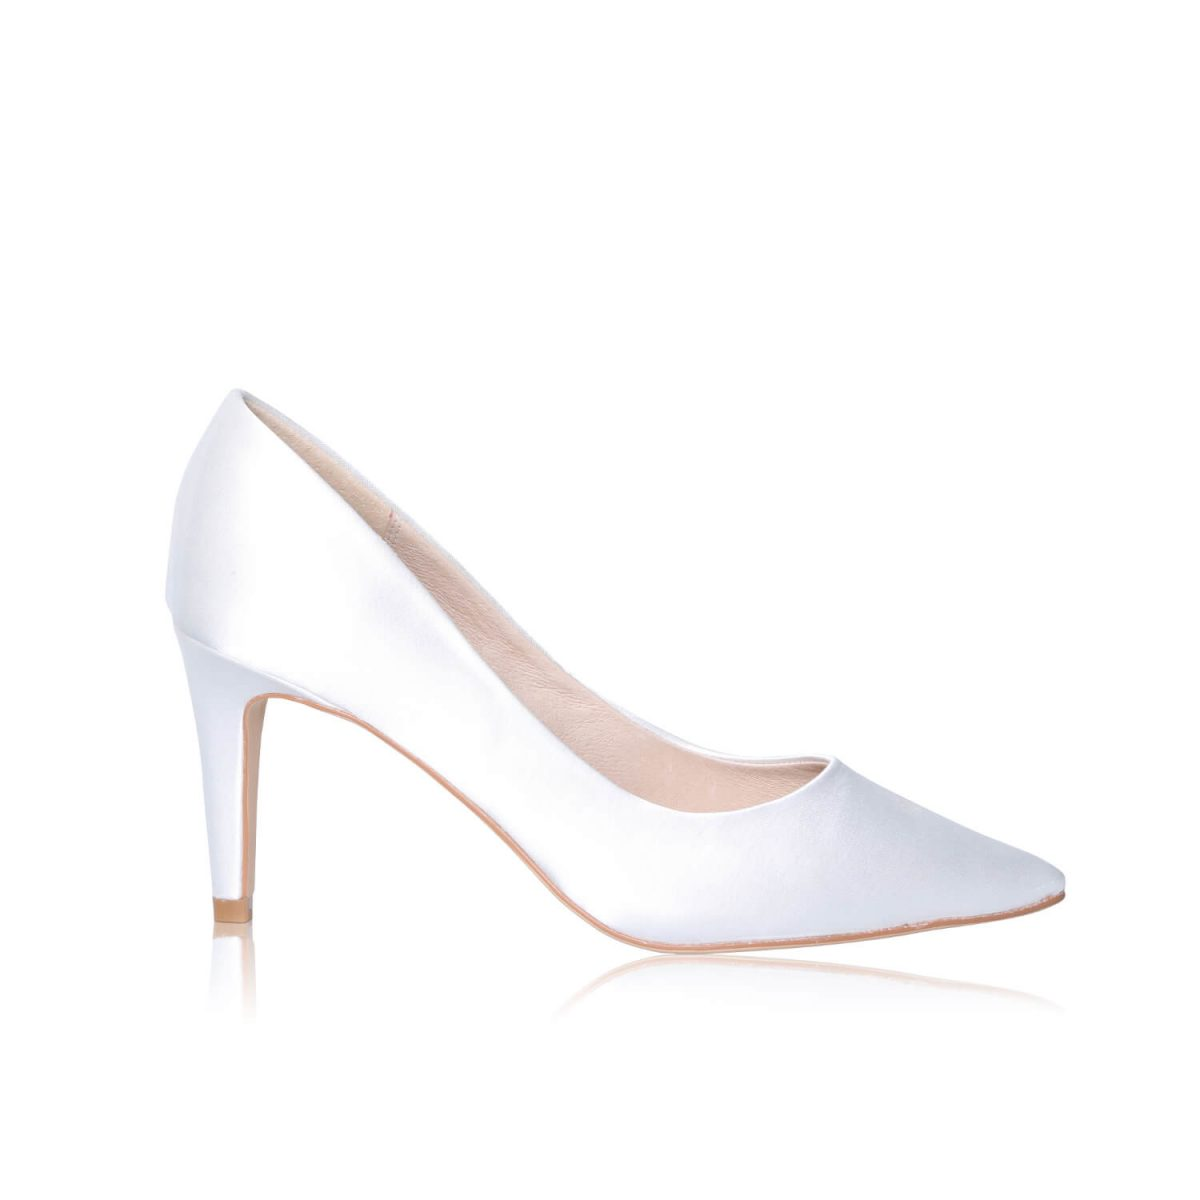 Perfect Bridal Rachel Shoes - Ivory 1